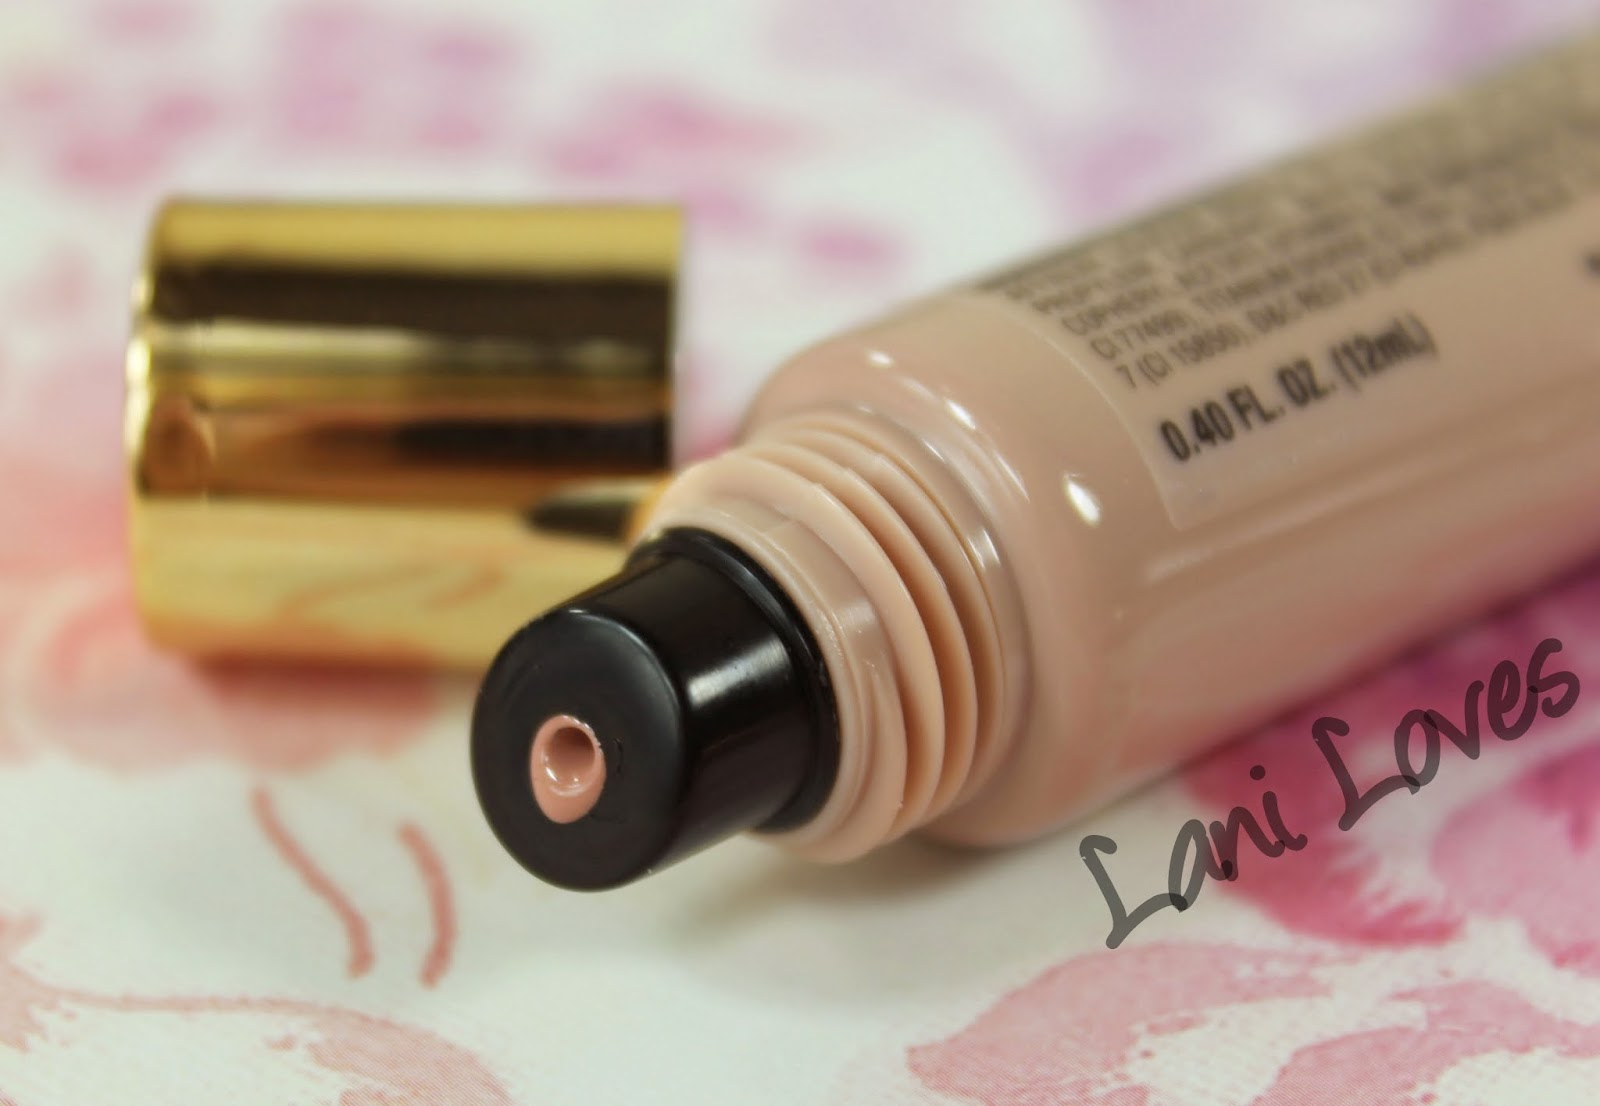 LA Girl Glazed Lip Paint - Whisper Swatches & Review